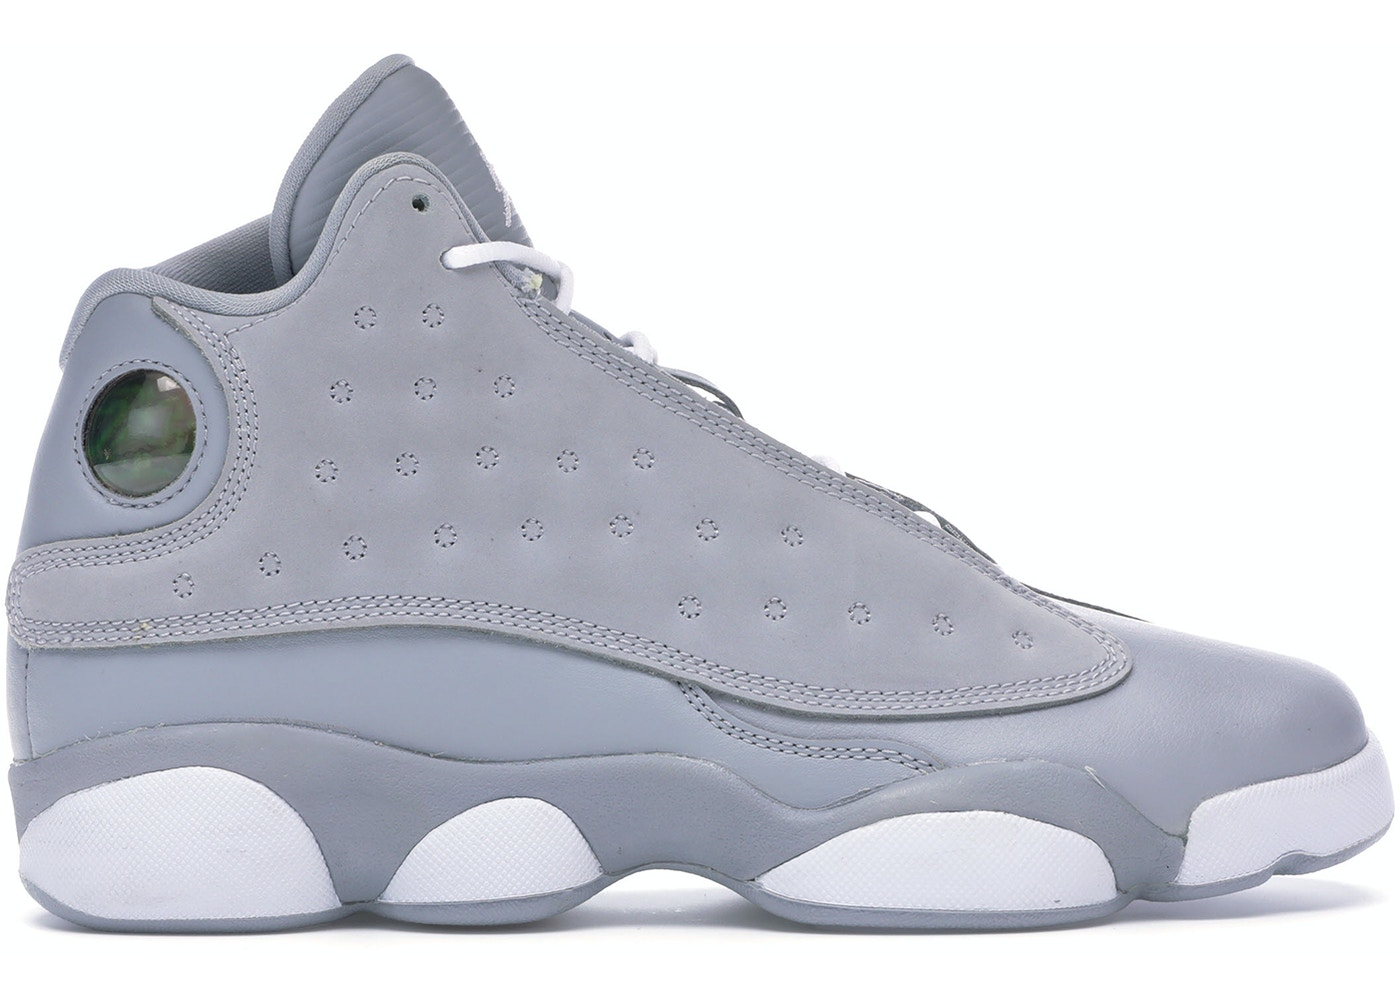 a42d309ad509 Jordan 13 Retro Wolf Grey Deadly Pink (GS) - 439358-018